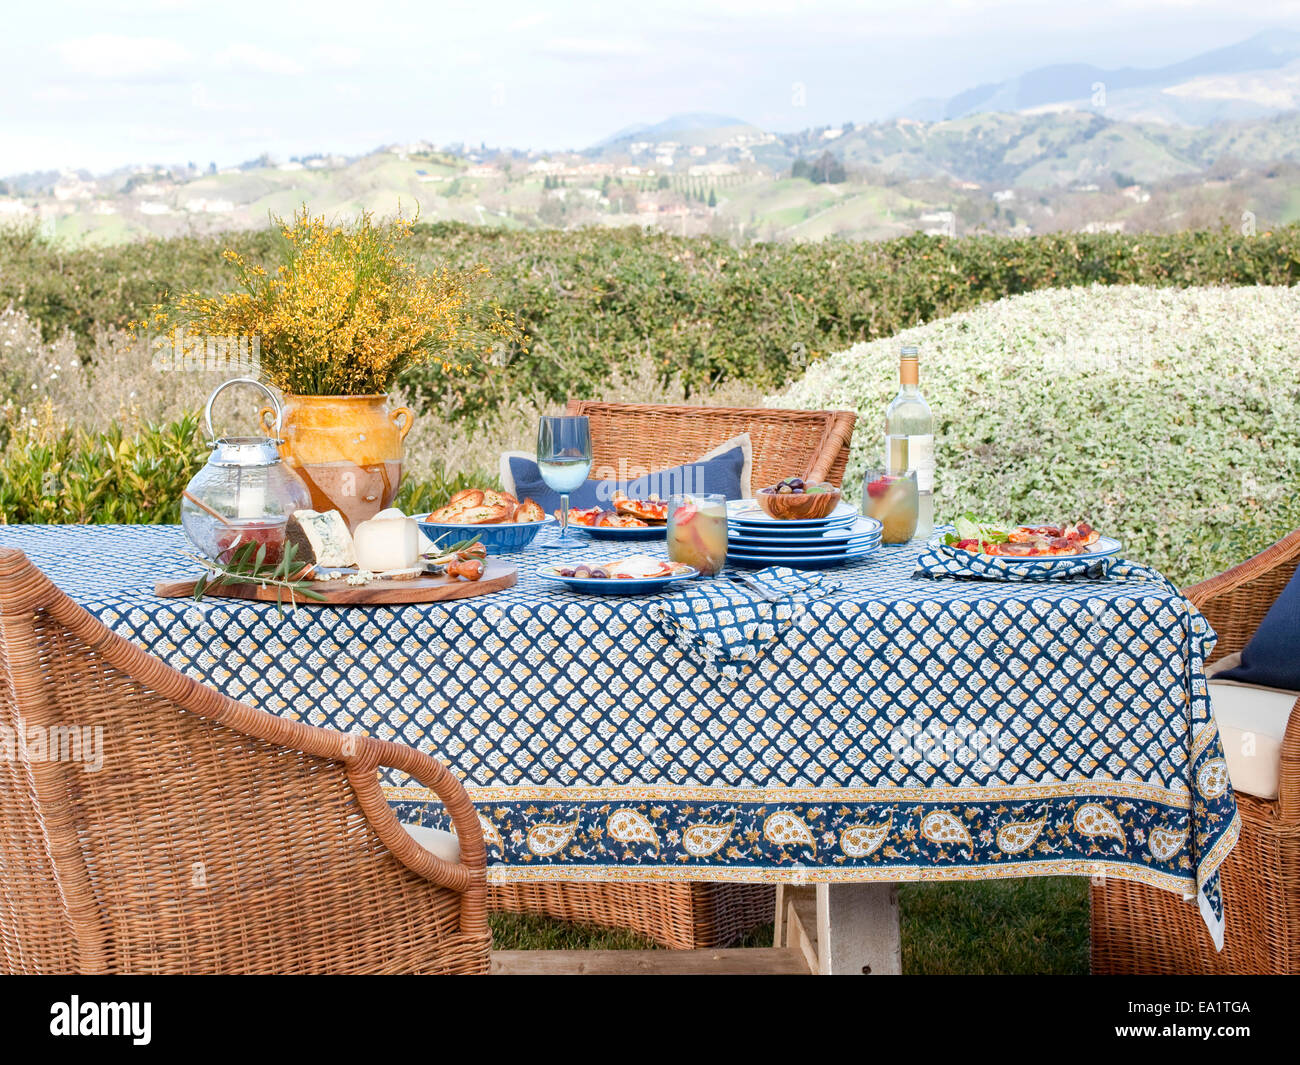 setting the table for a meal outdoors - Stock Image